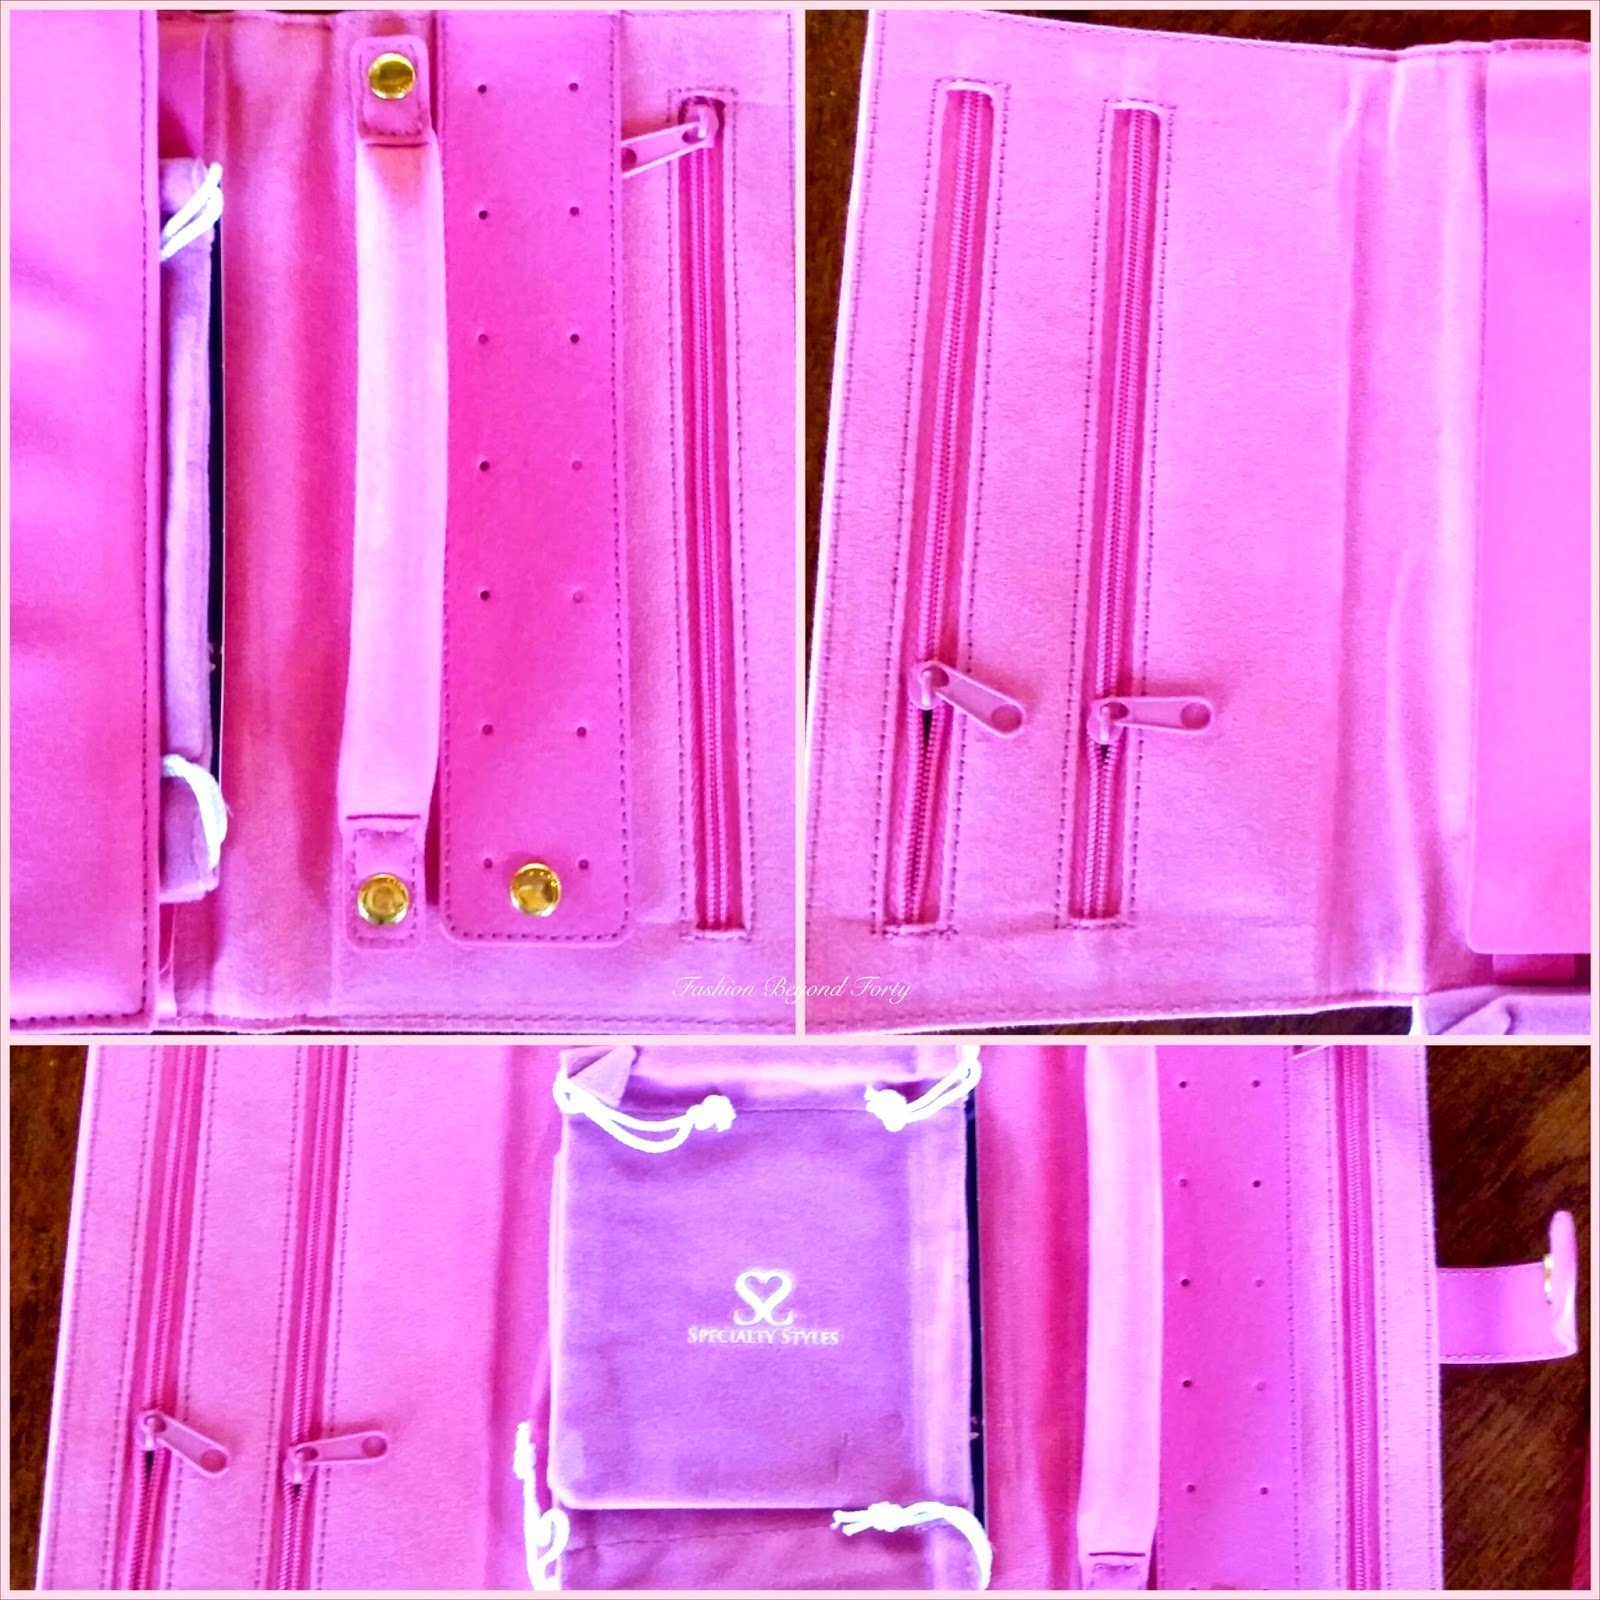 Jewelry Roll Bag from Specialty Styles Review